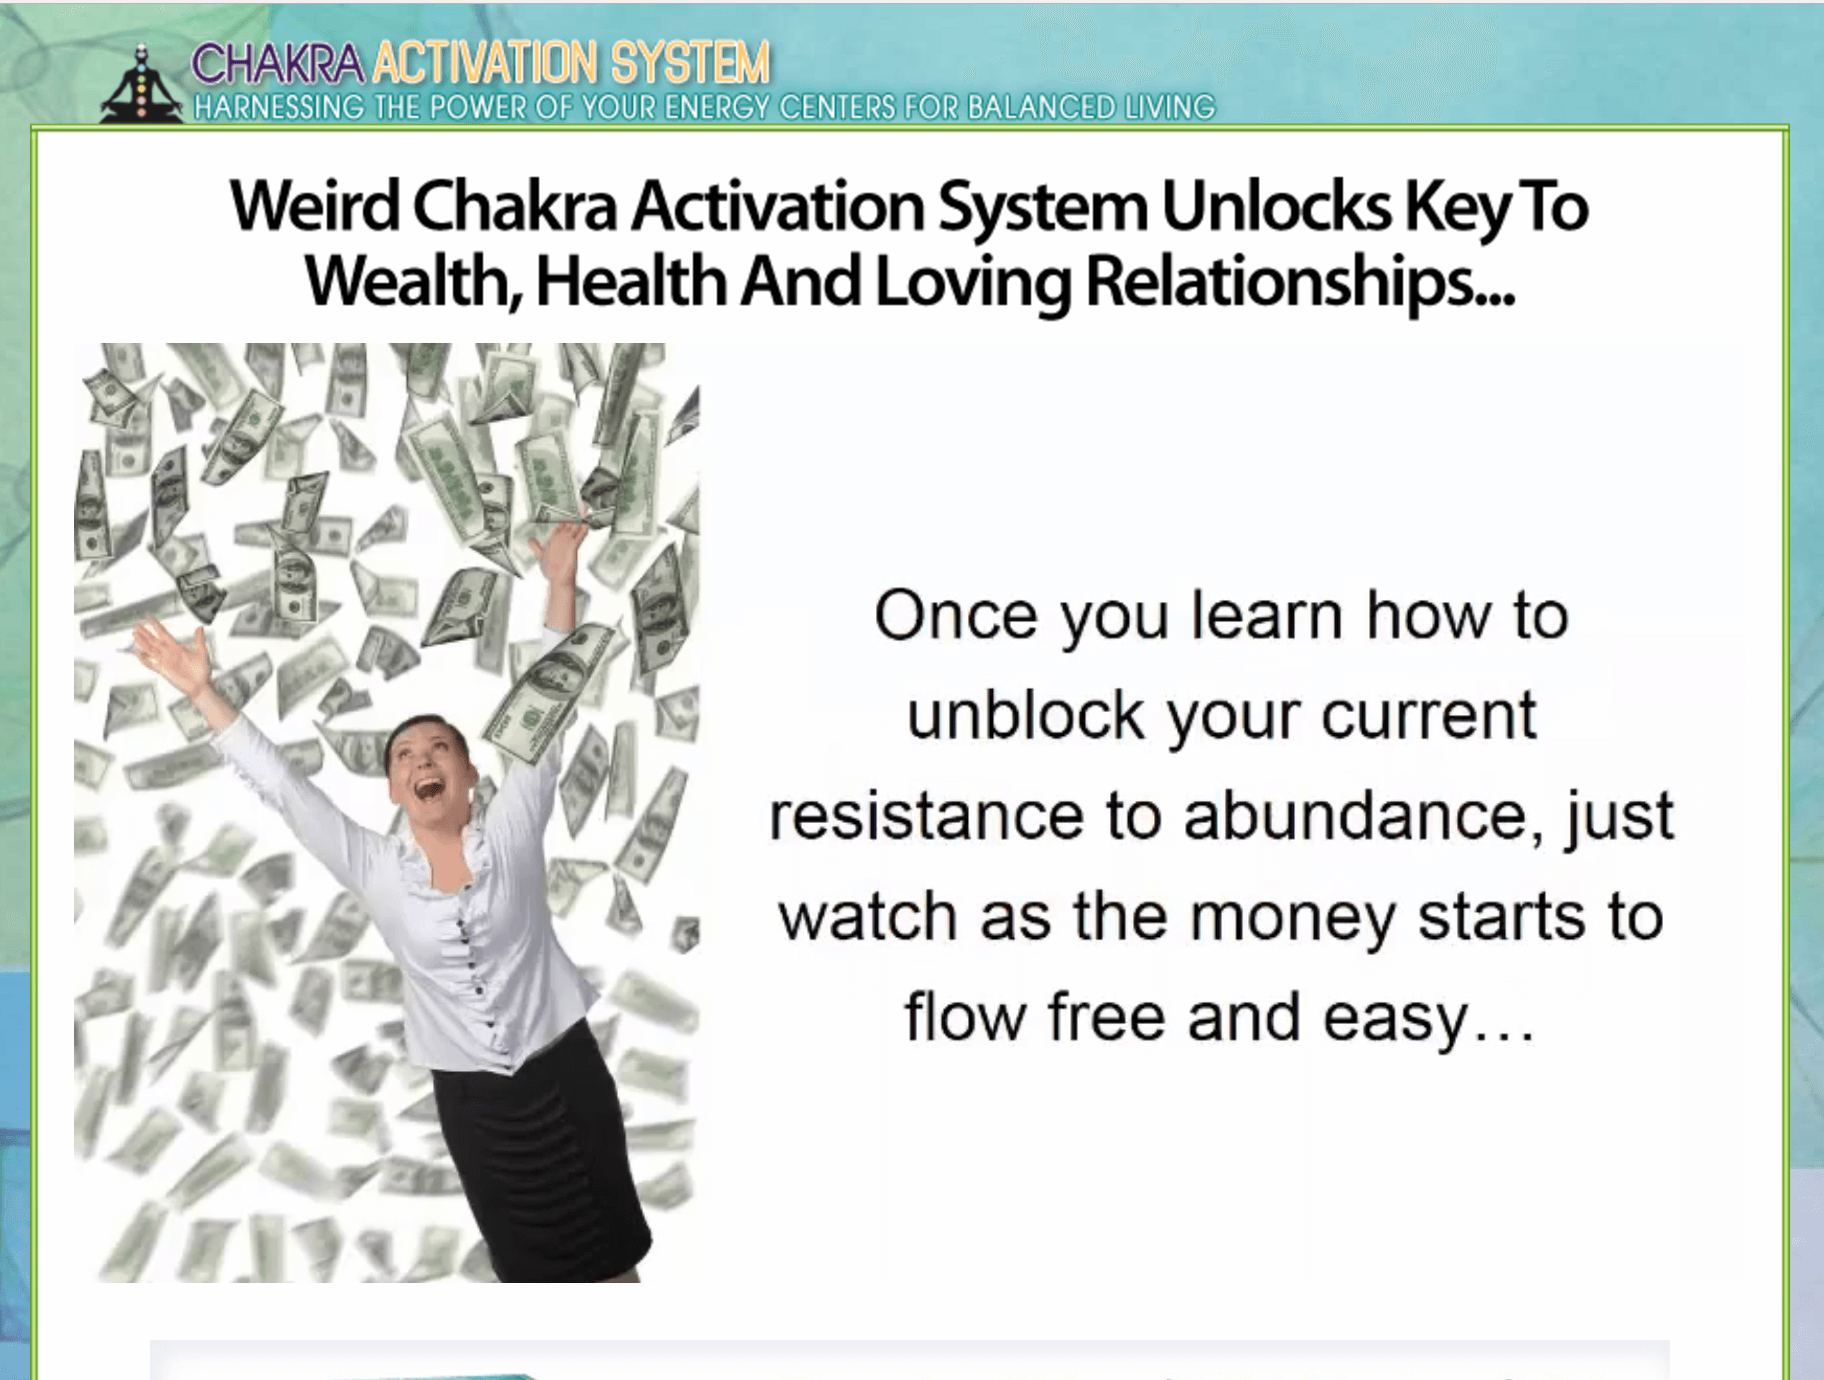 Unlocks the key to wealth health and loving relationships